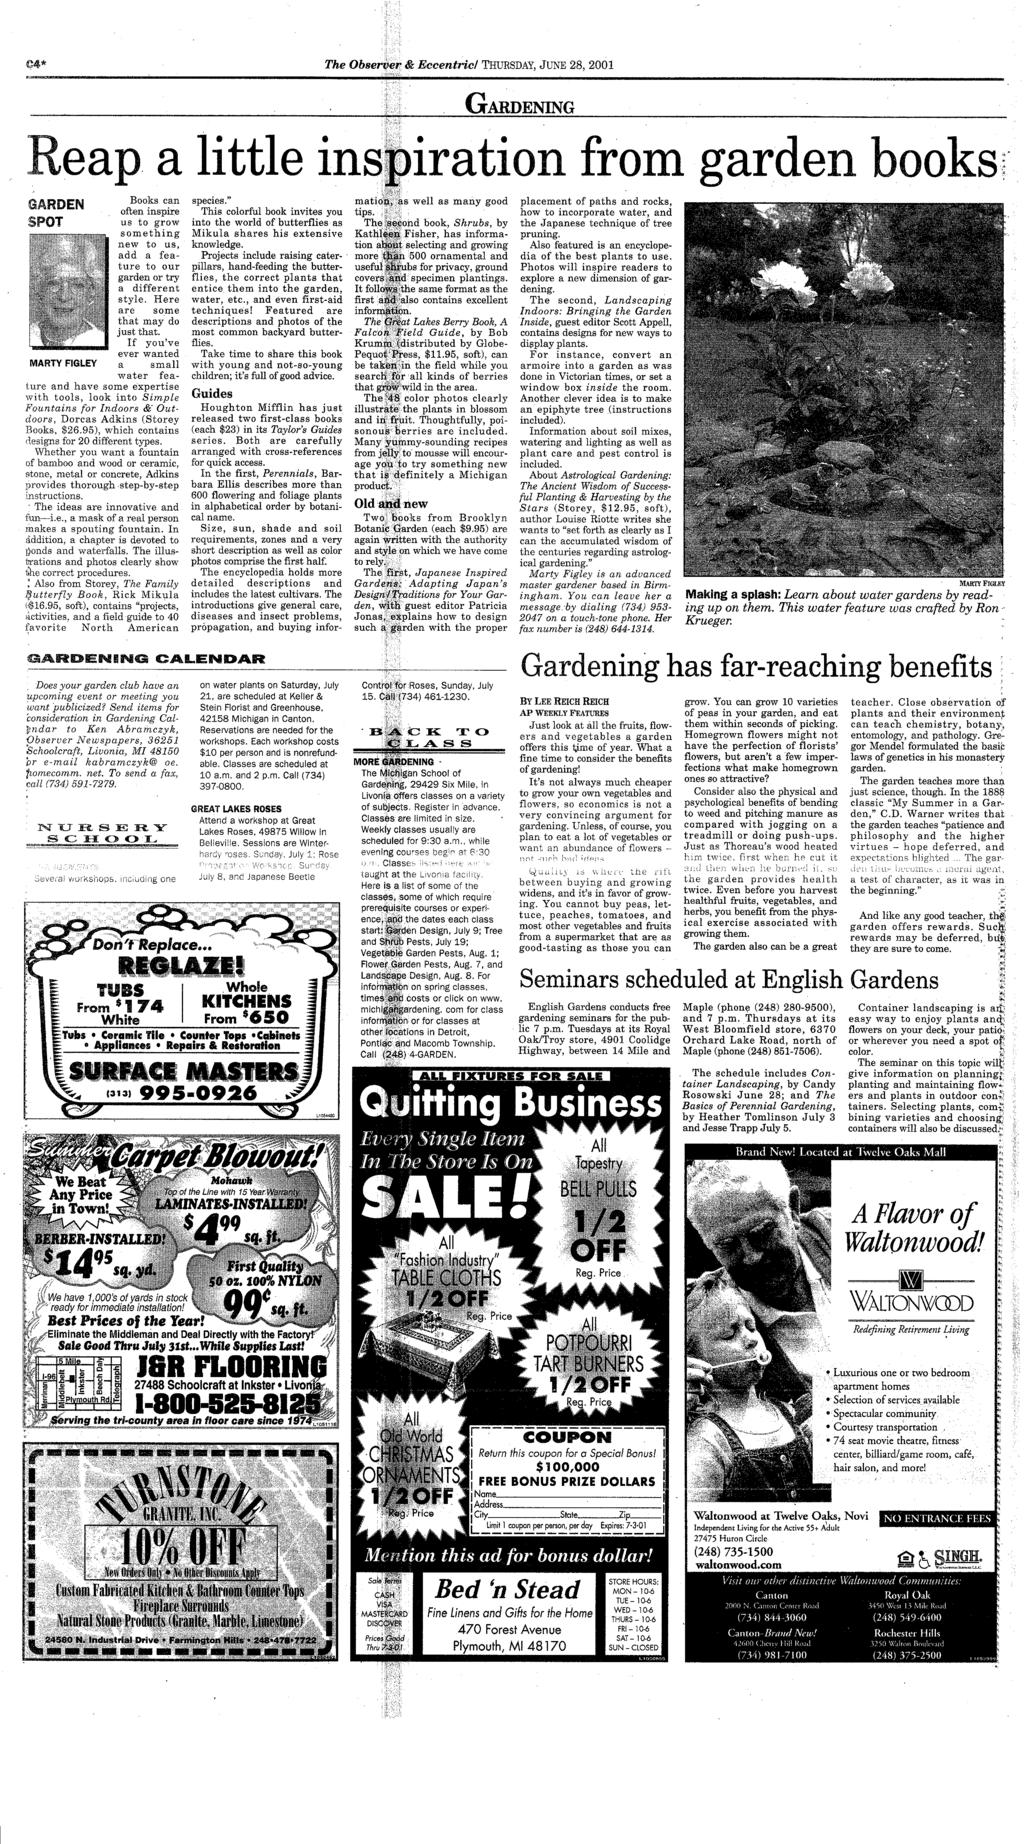 Canton dbsmrc your hometown newspaper serving canton for 26 years pdf 04 the observer eccentric thursday june 28 2001 gardening reap a fandeluxe Images